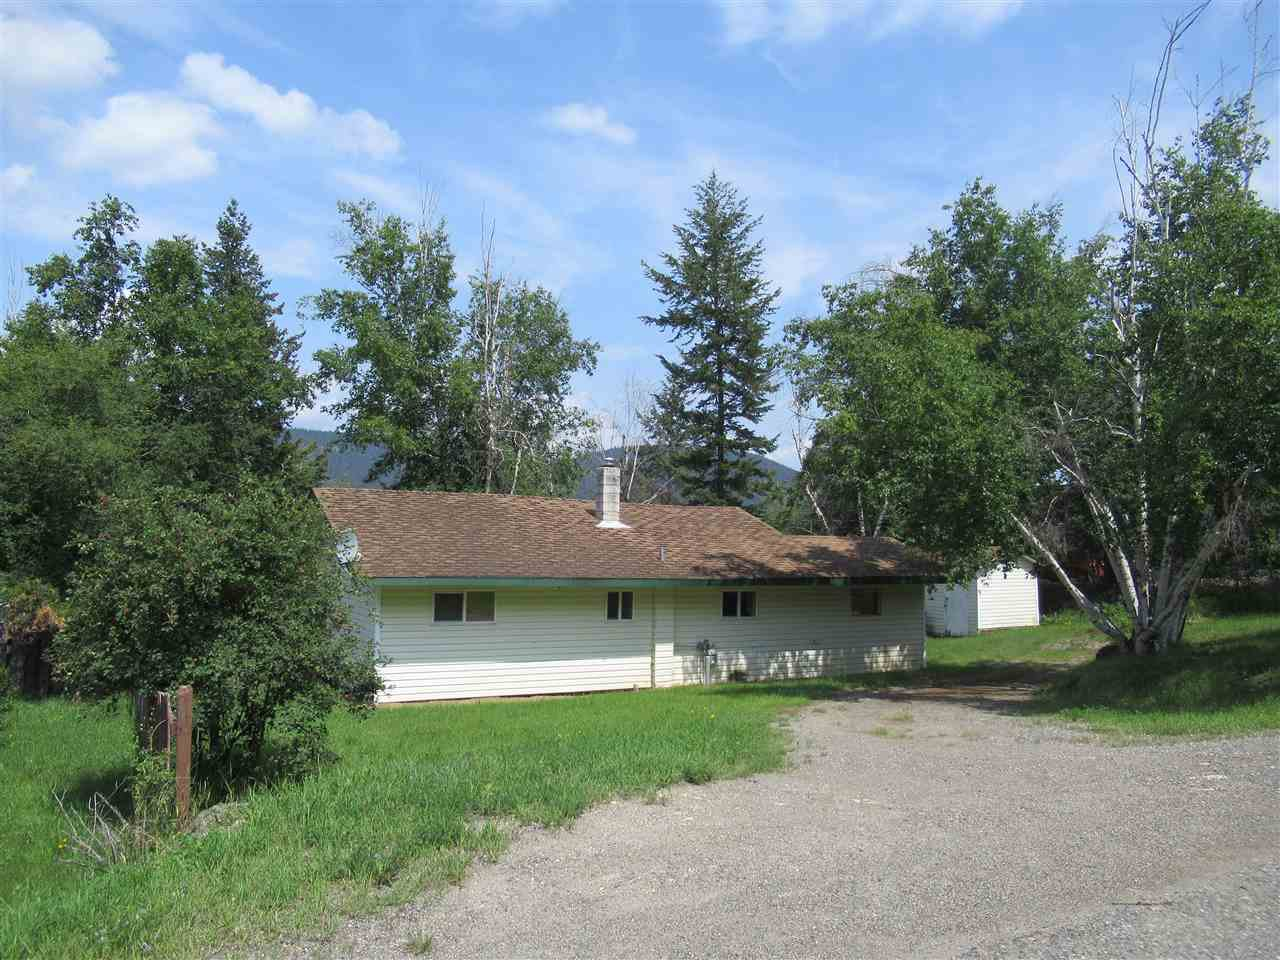 Main Photo: 1712 RENNER Road in Williams Lake: Williams Lake - City House for sale (Williams Lake (Zone 27))  : MLS®# R2390276